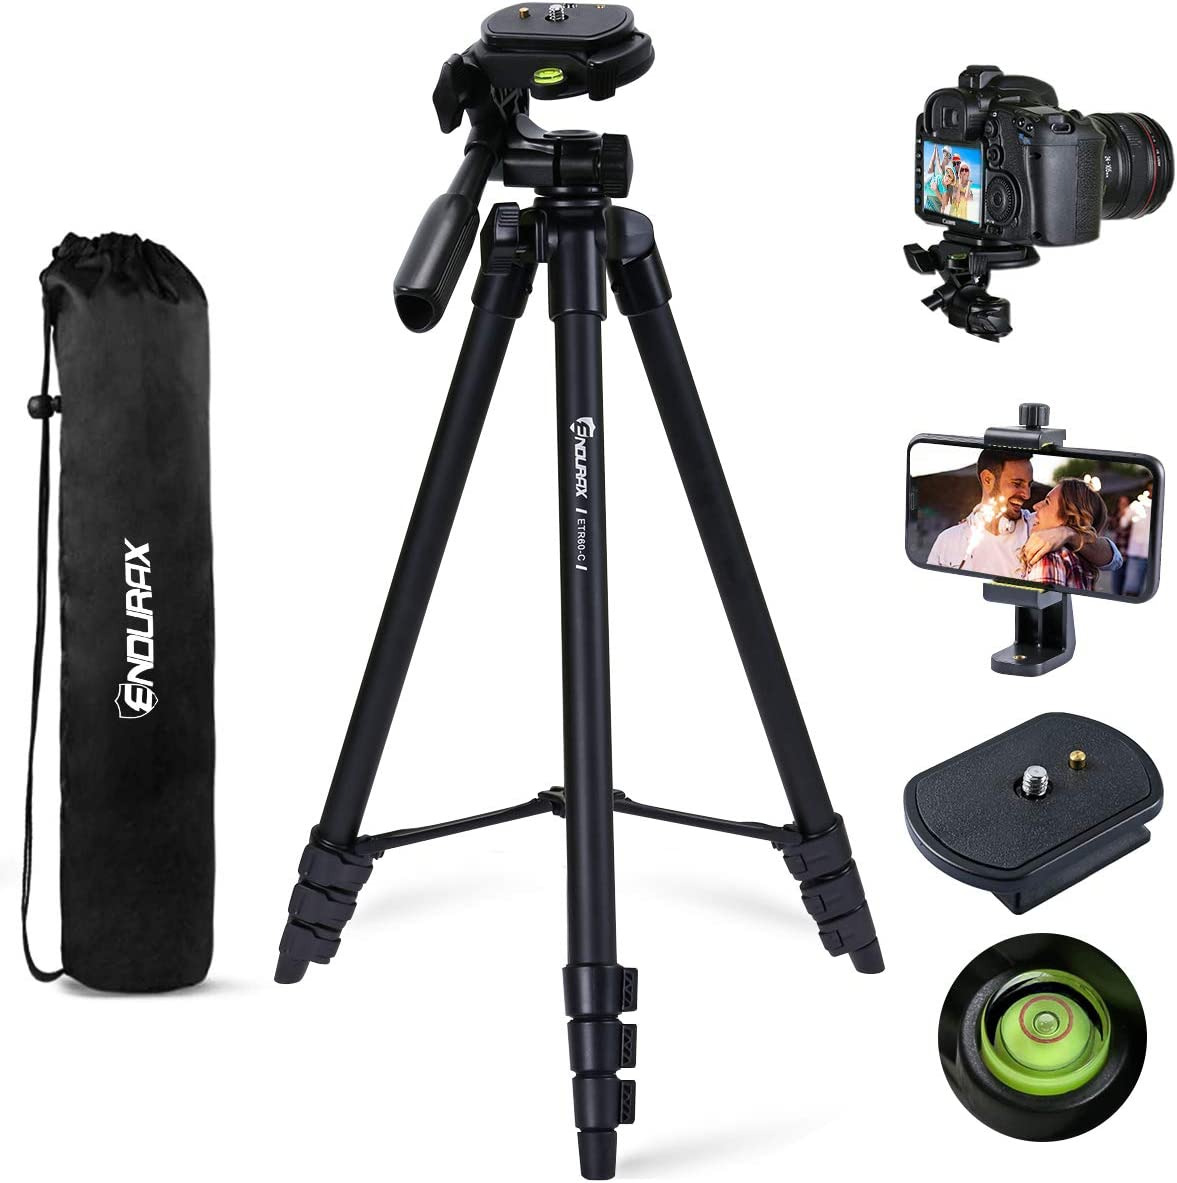 Endurax 60'' Camera Phone Tripod Stand for DSLR Canon Nikon with Universal Phone Mount, Bubble Level and Carry Bag : Camera & Photo